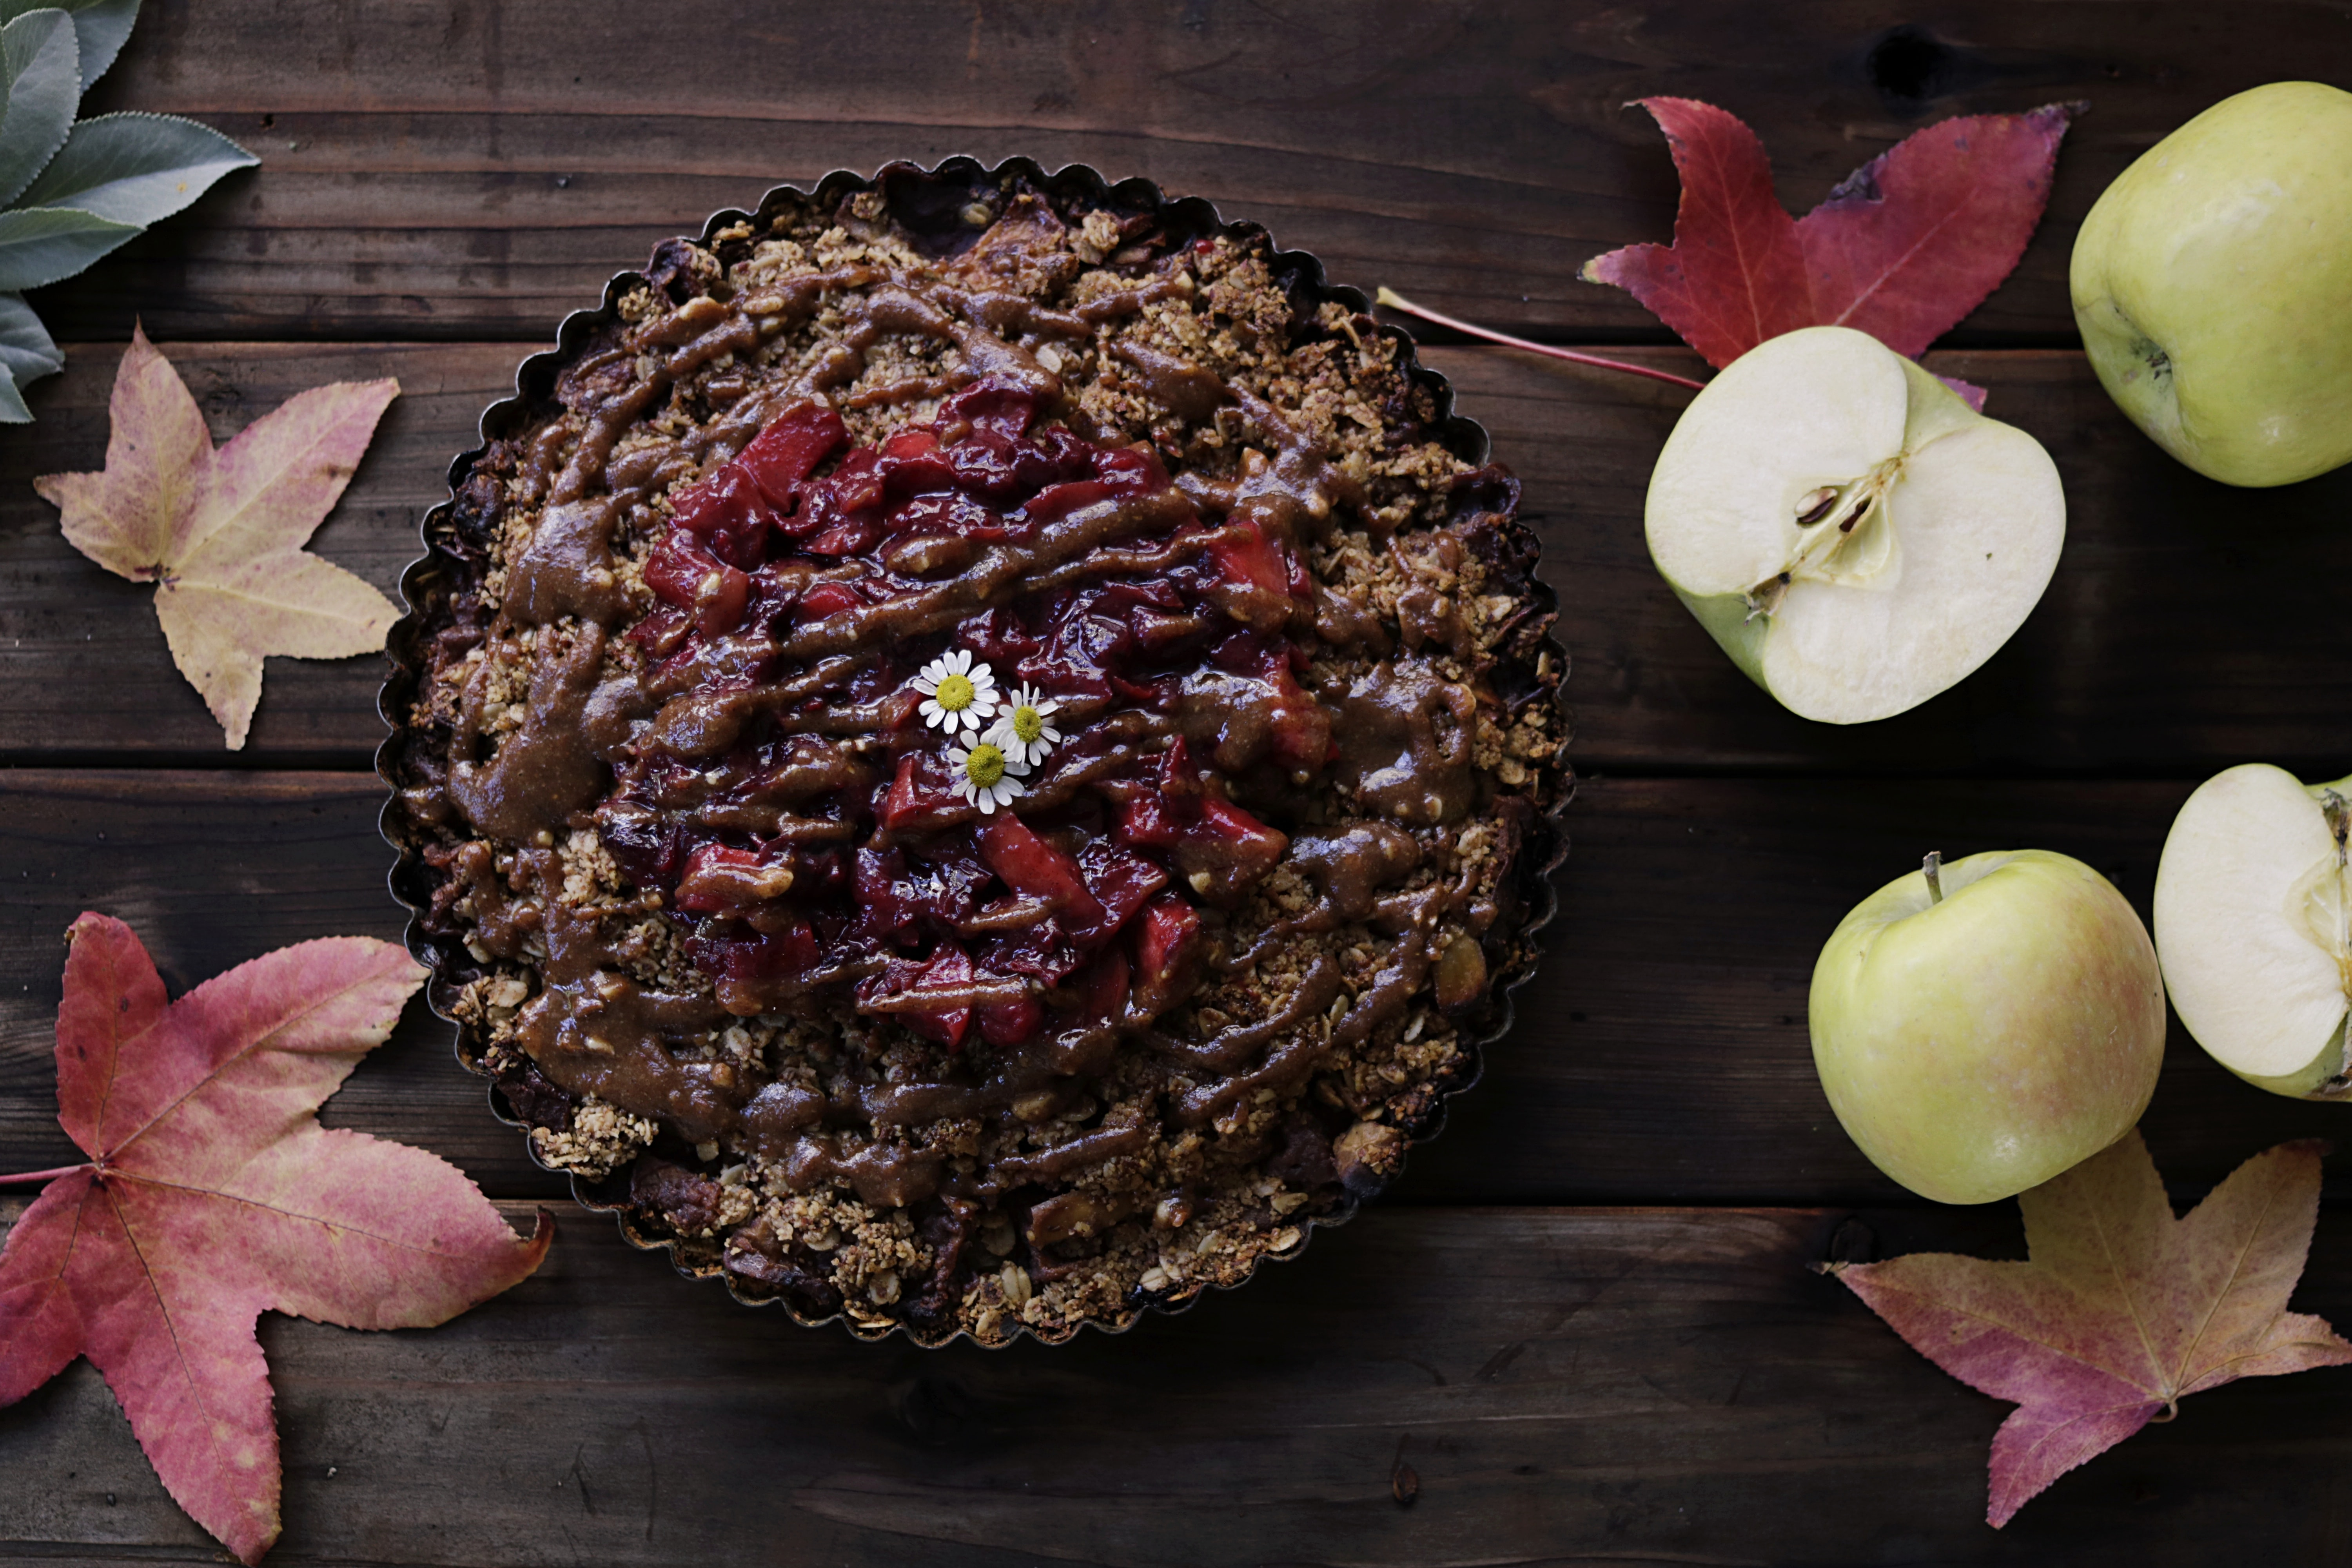 baked pastry on brown wooden surface beside sliced apples